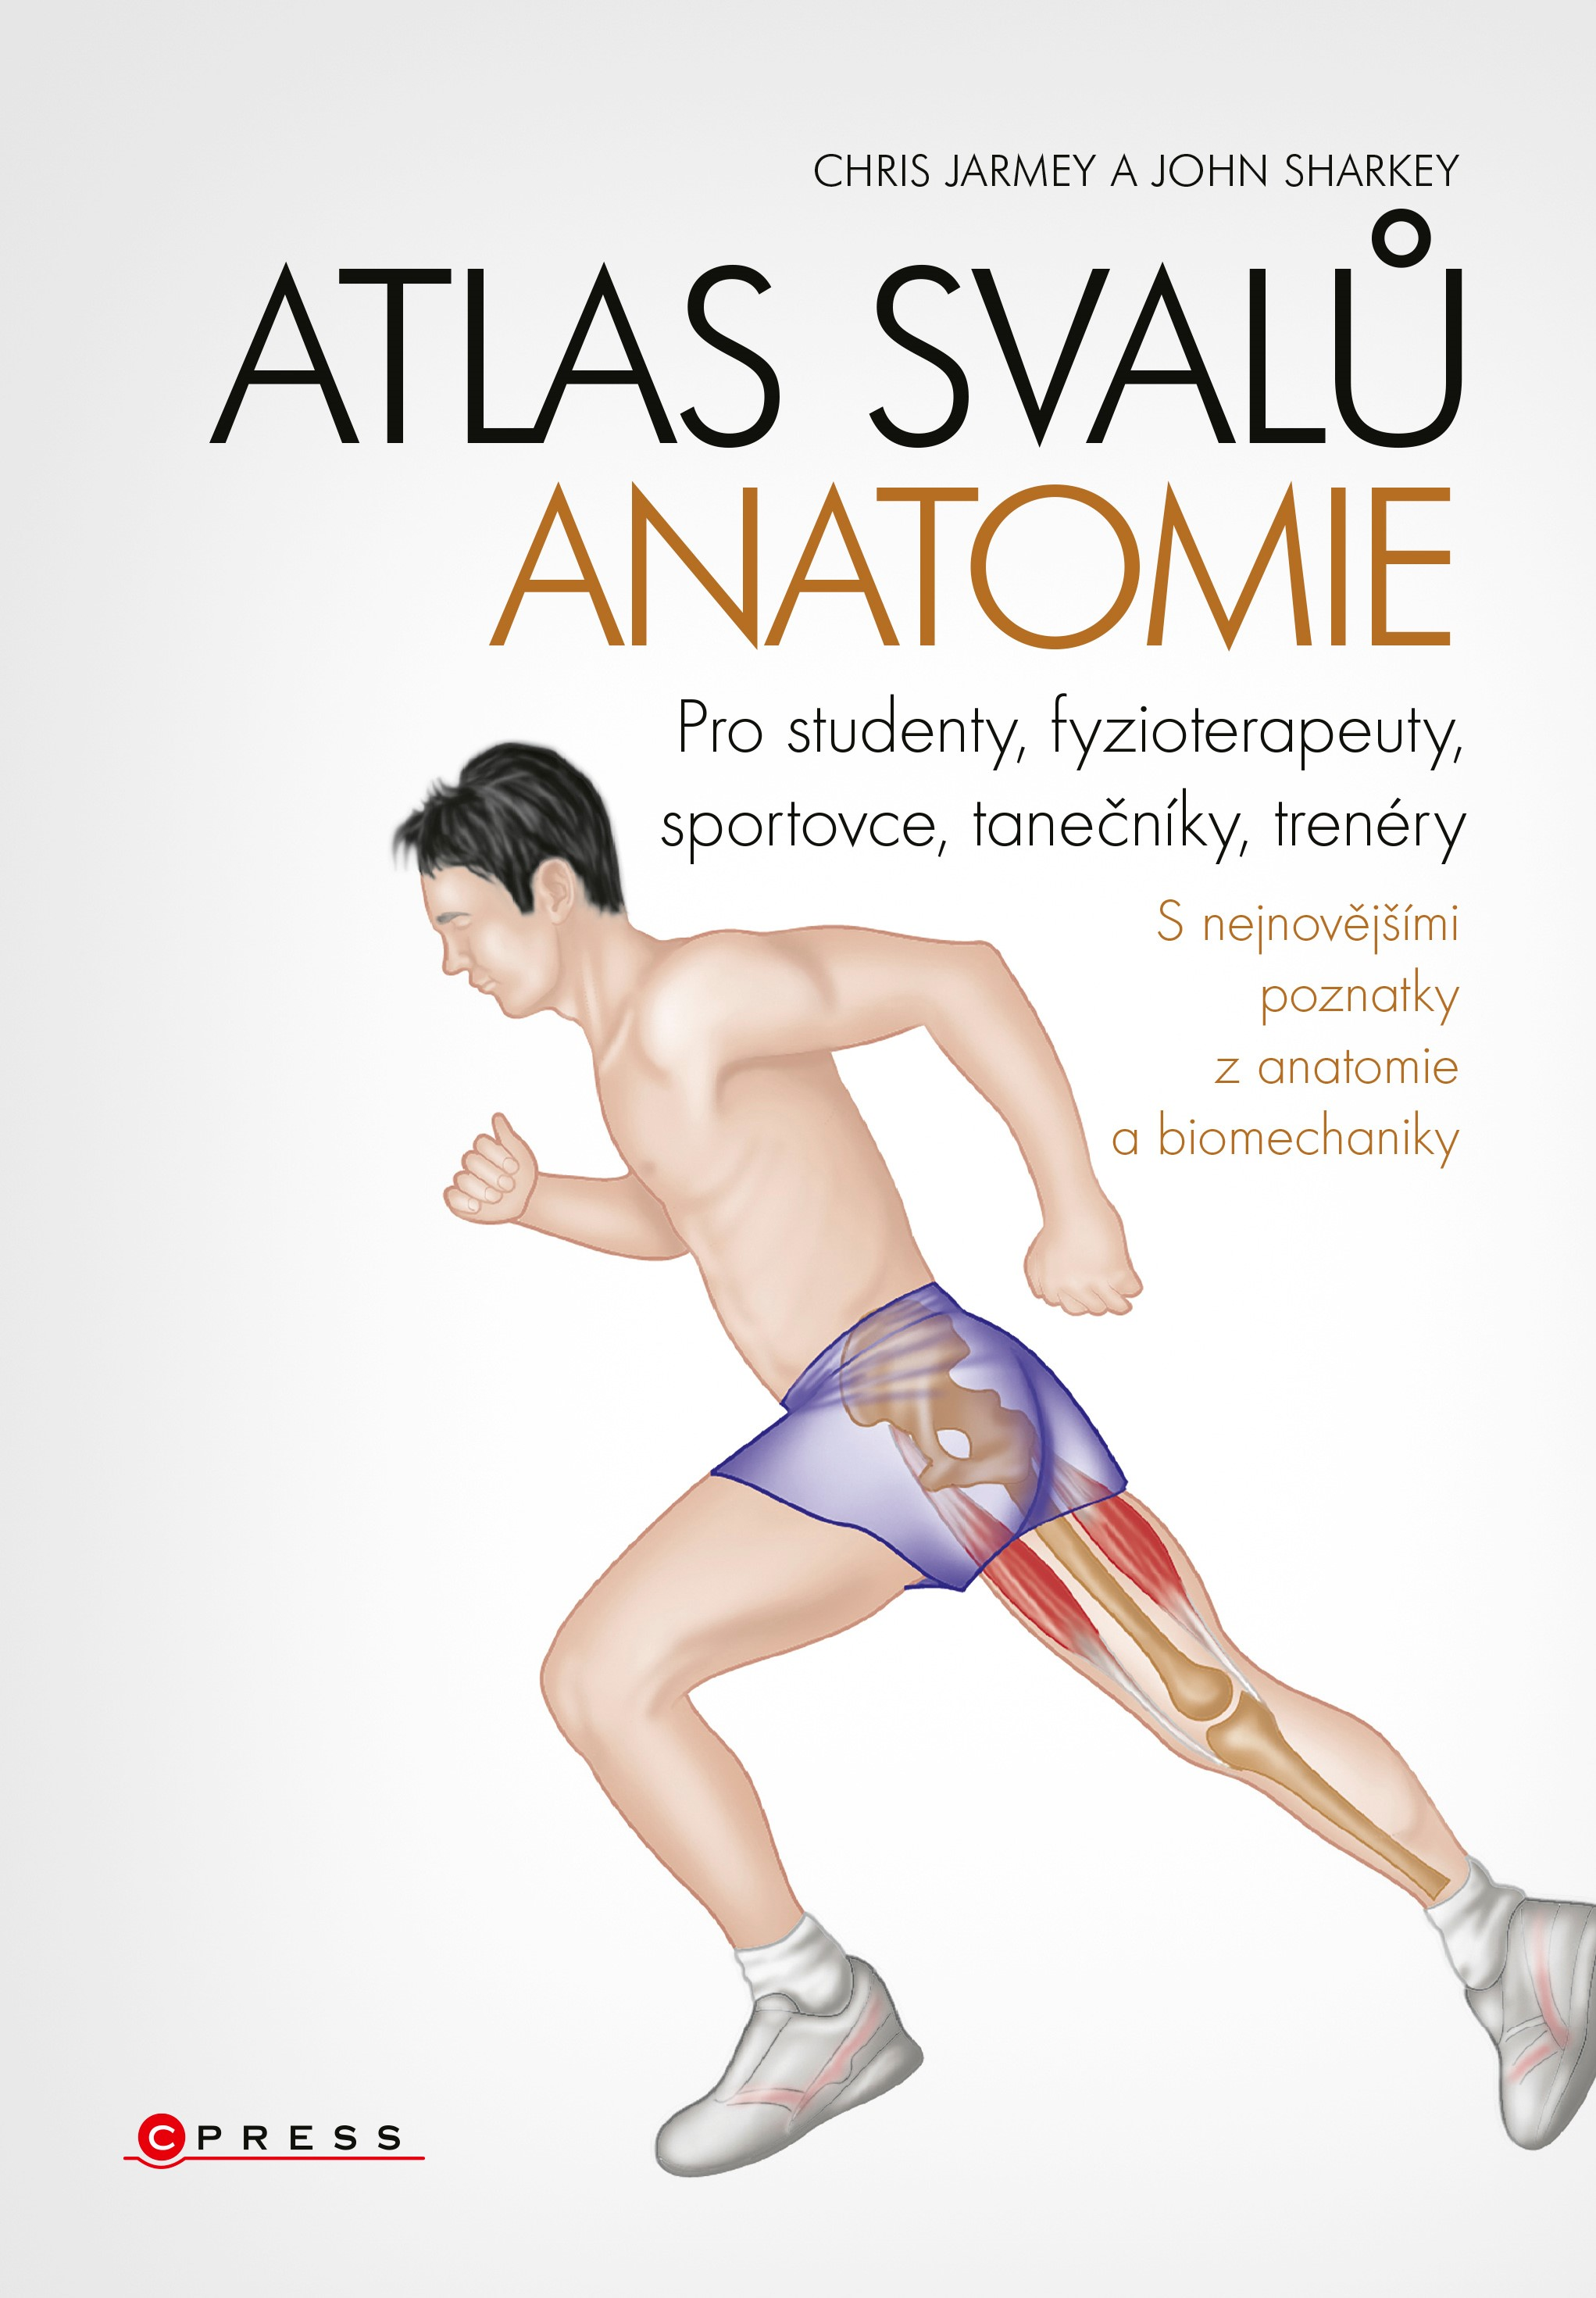 Atlas svalů - anatomie - Chris Jarmey, John Sharkey